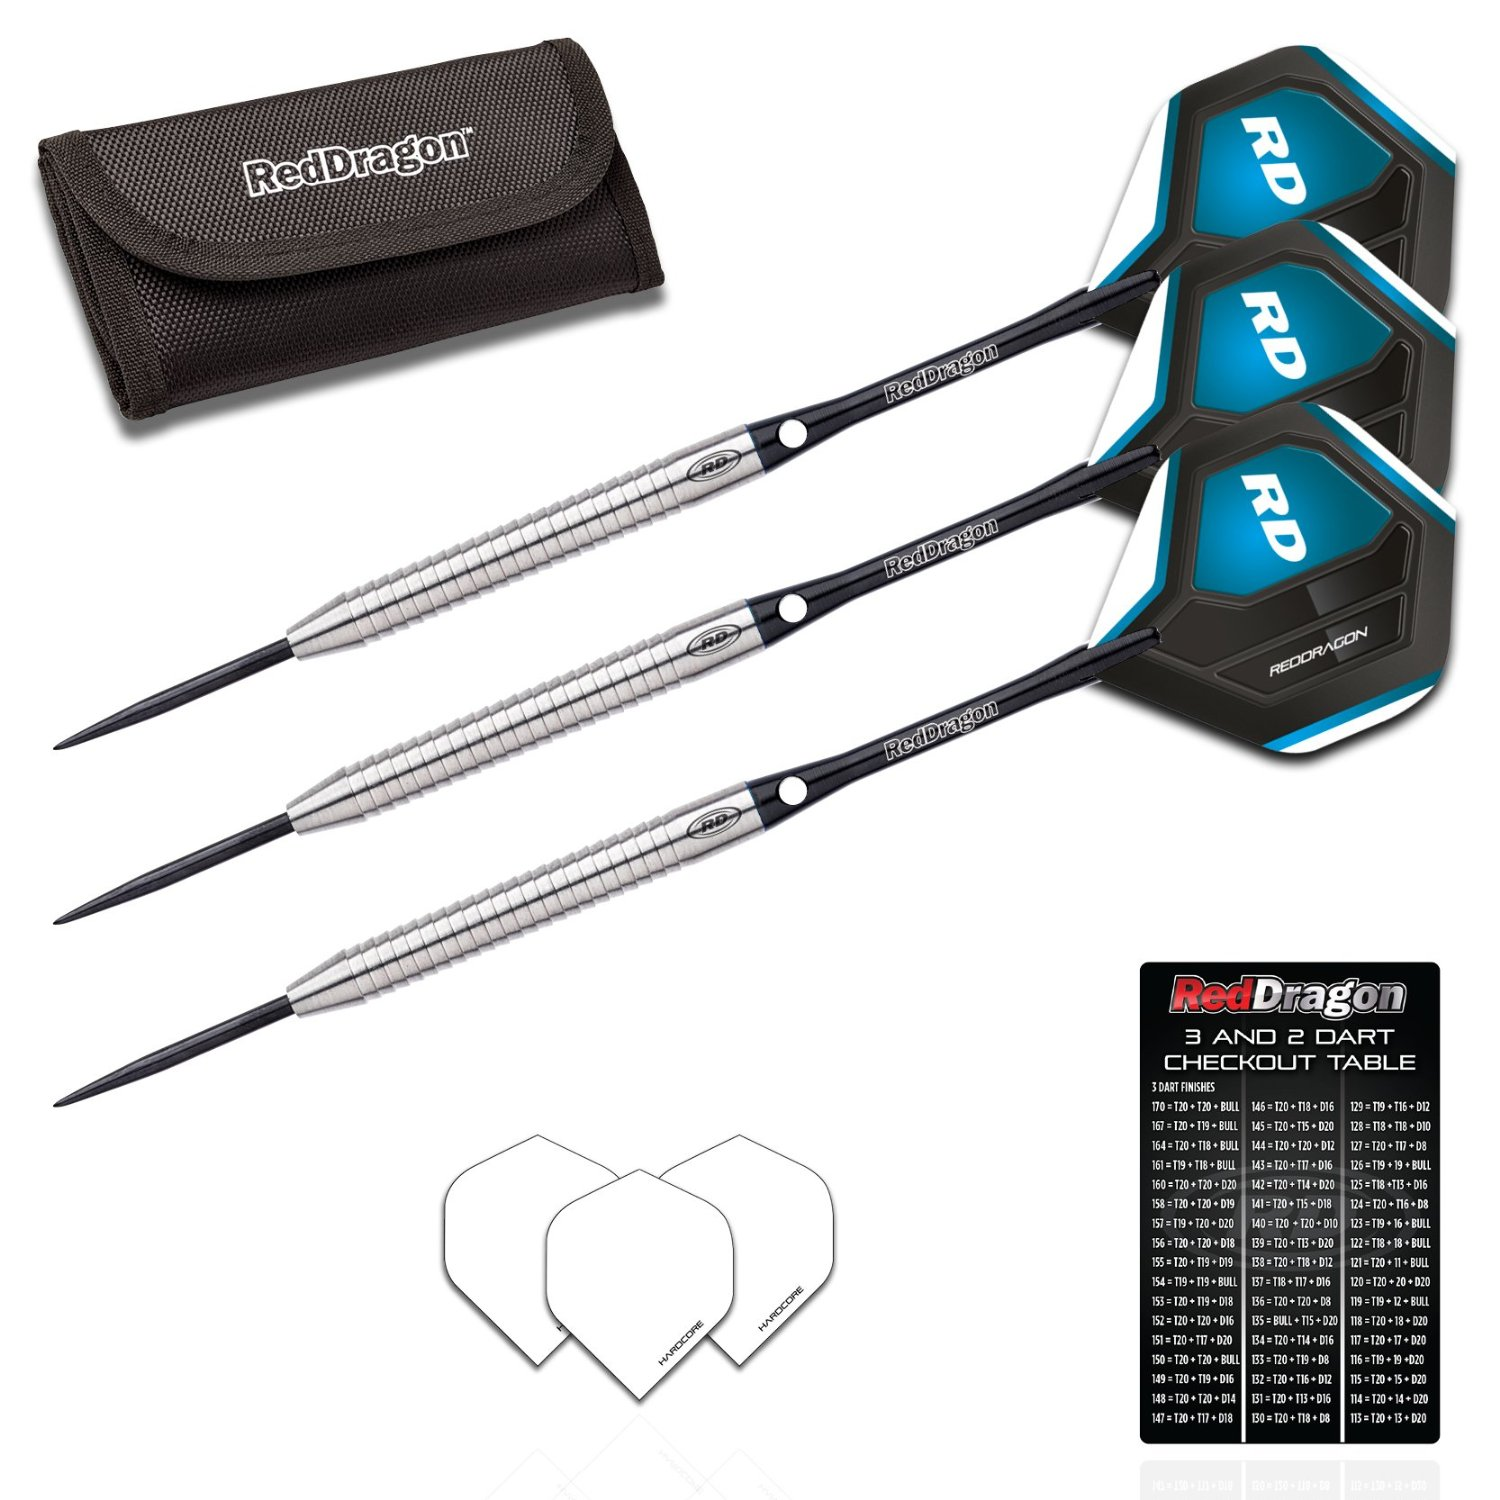 Red Dragon Razor Edge 1 - 85% Tungsten Steel Darts with Flights, Shafts & Wallet & Red Dragon Checkout Card